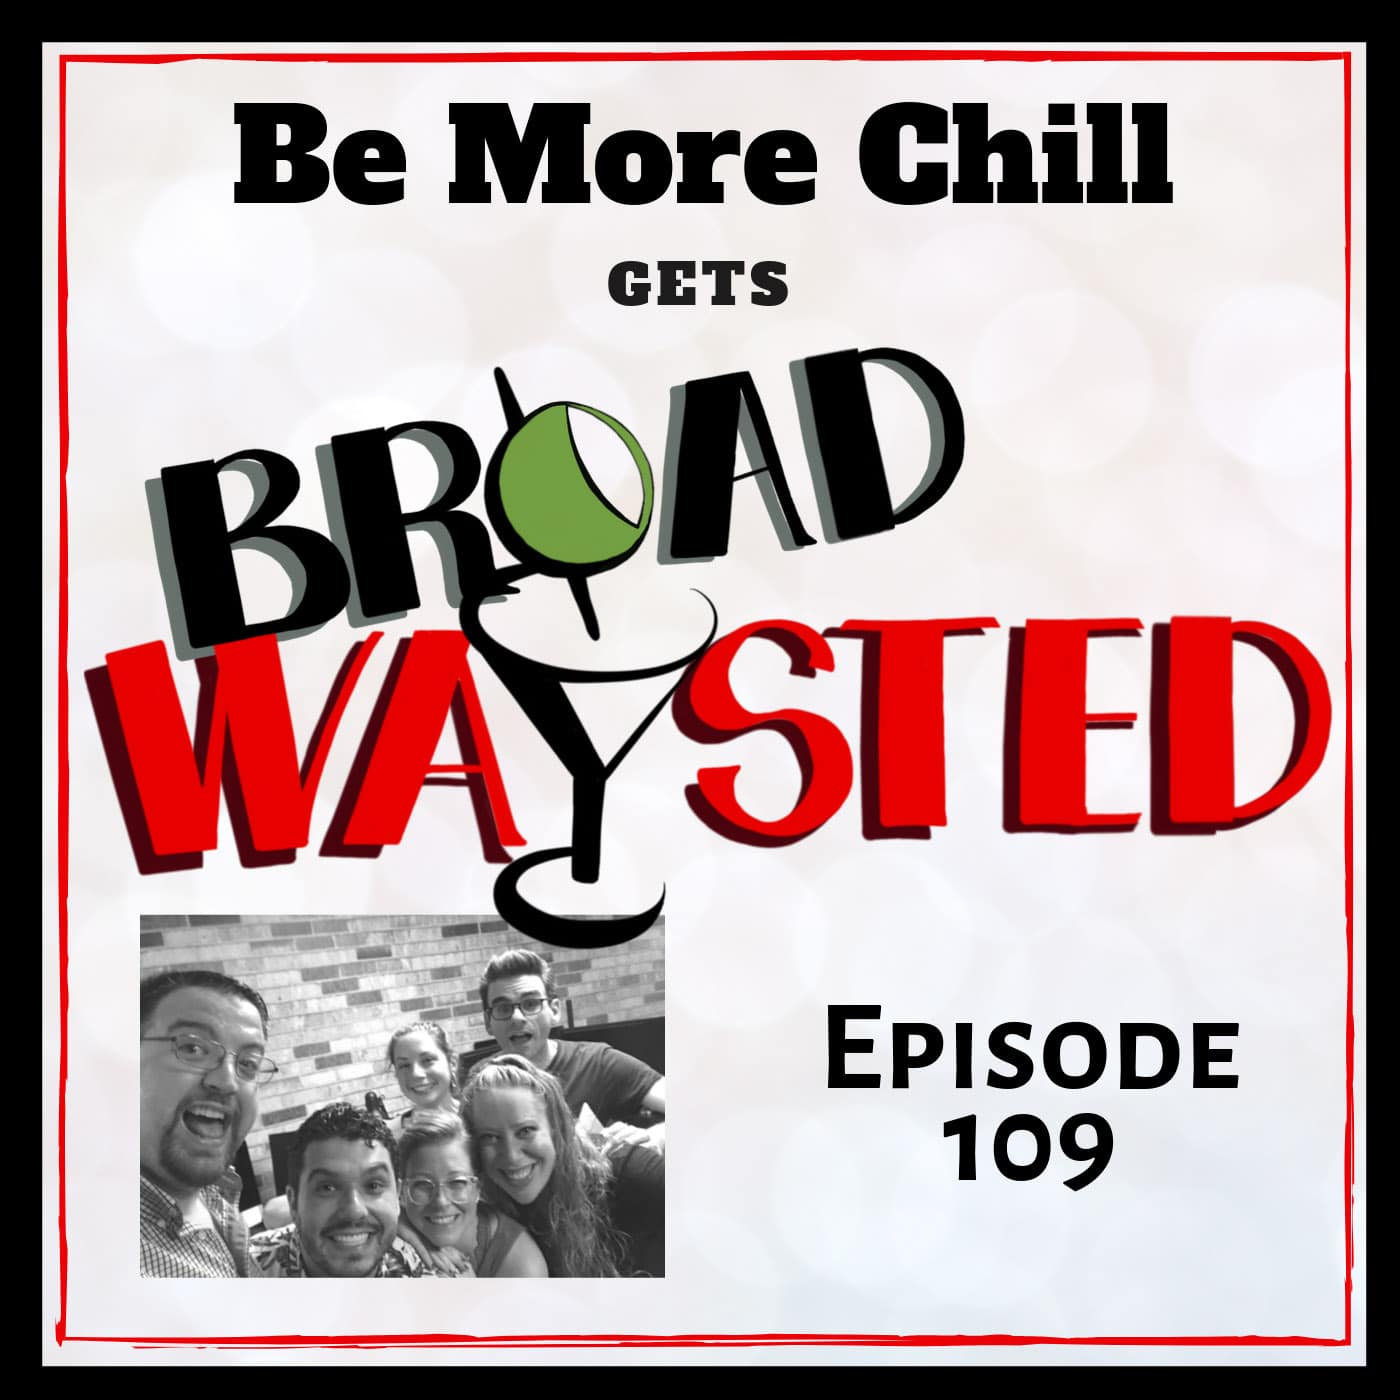 Broadwaysted Ep 109 Be More Chill